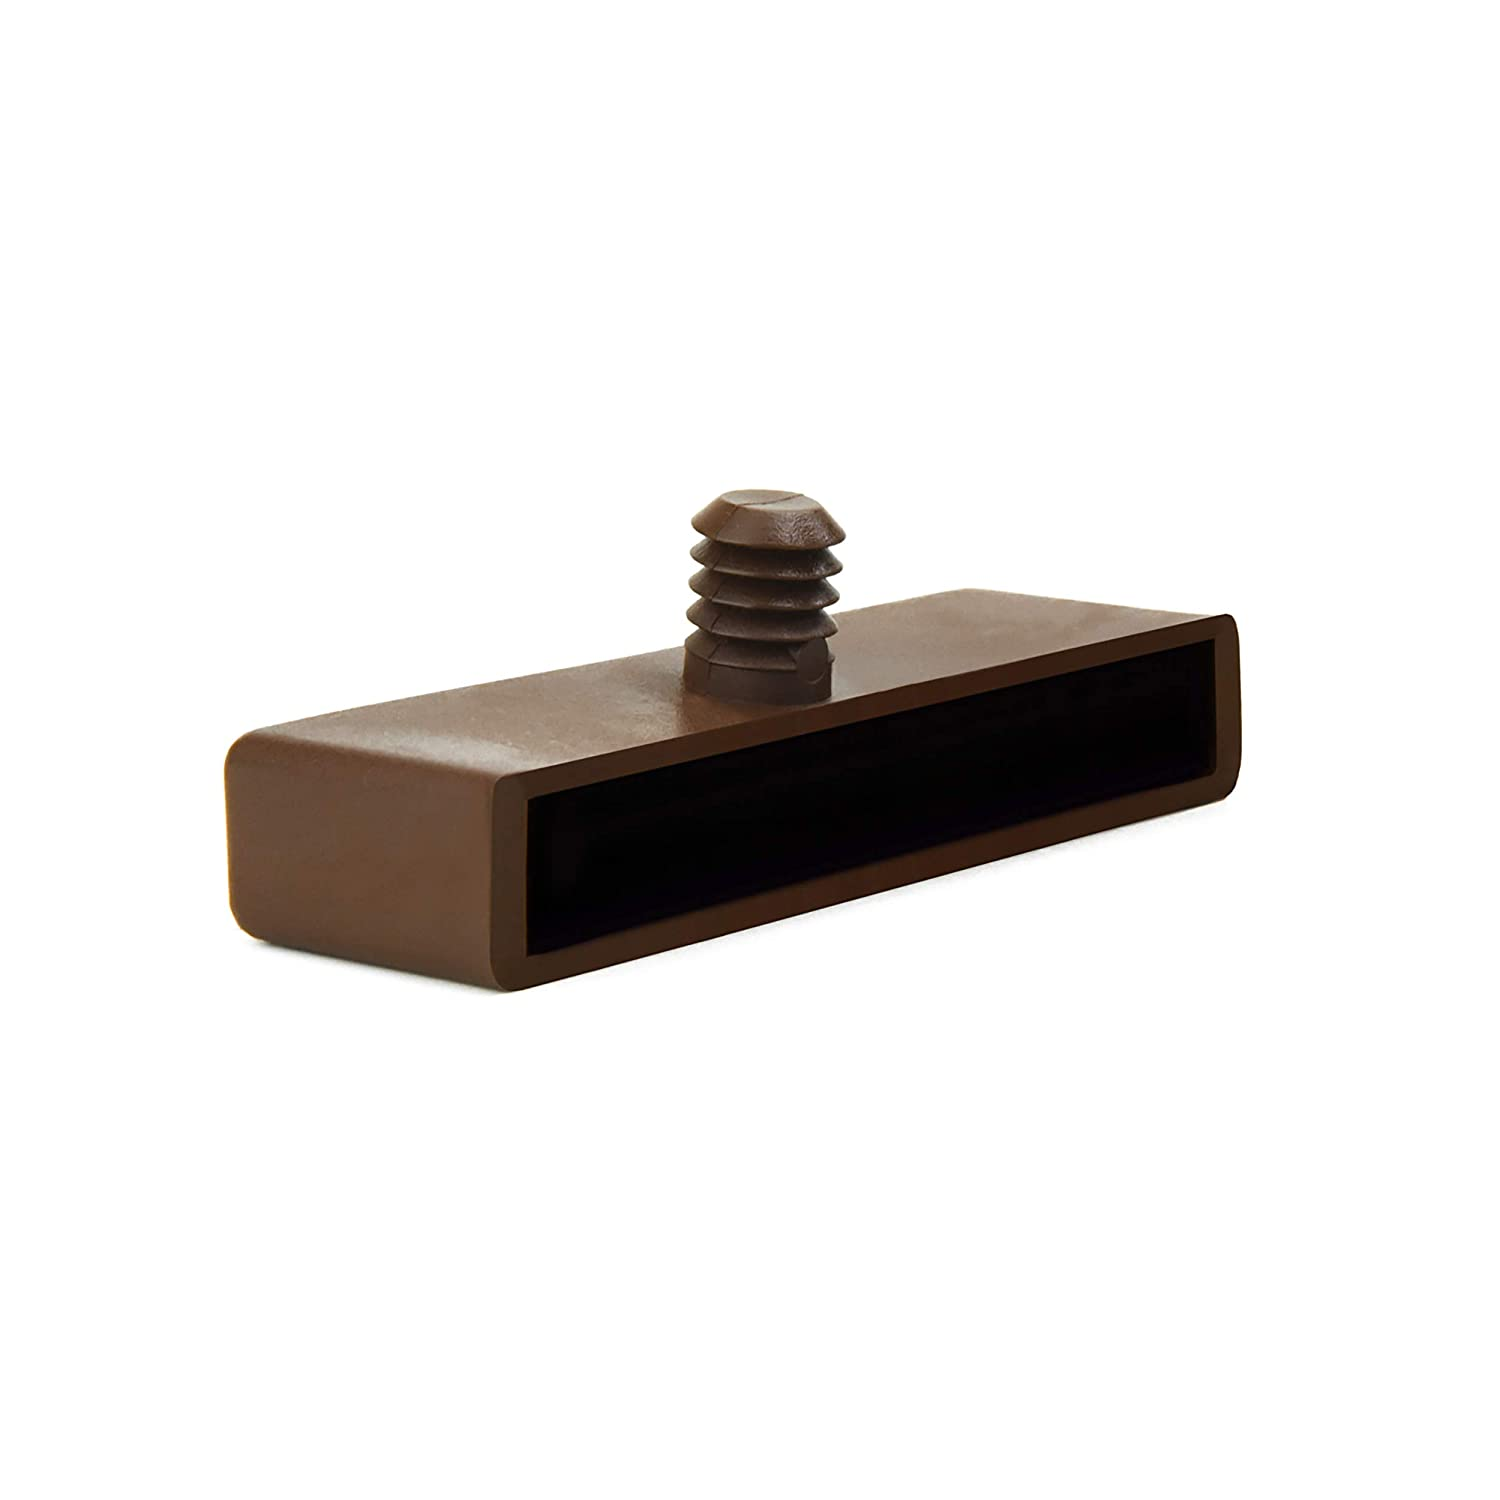 70mm Bed Slat Holders Caps for Wooden Frames 1 Prong (Pack of 10) The Bed Slats Company